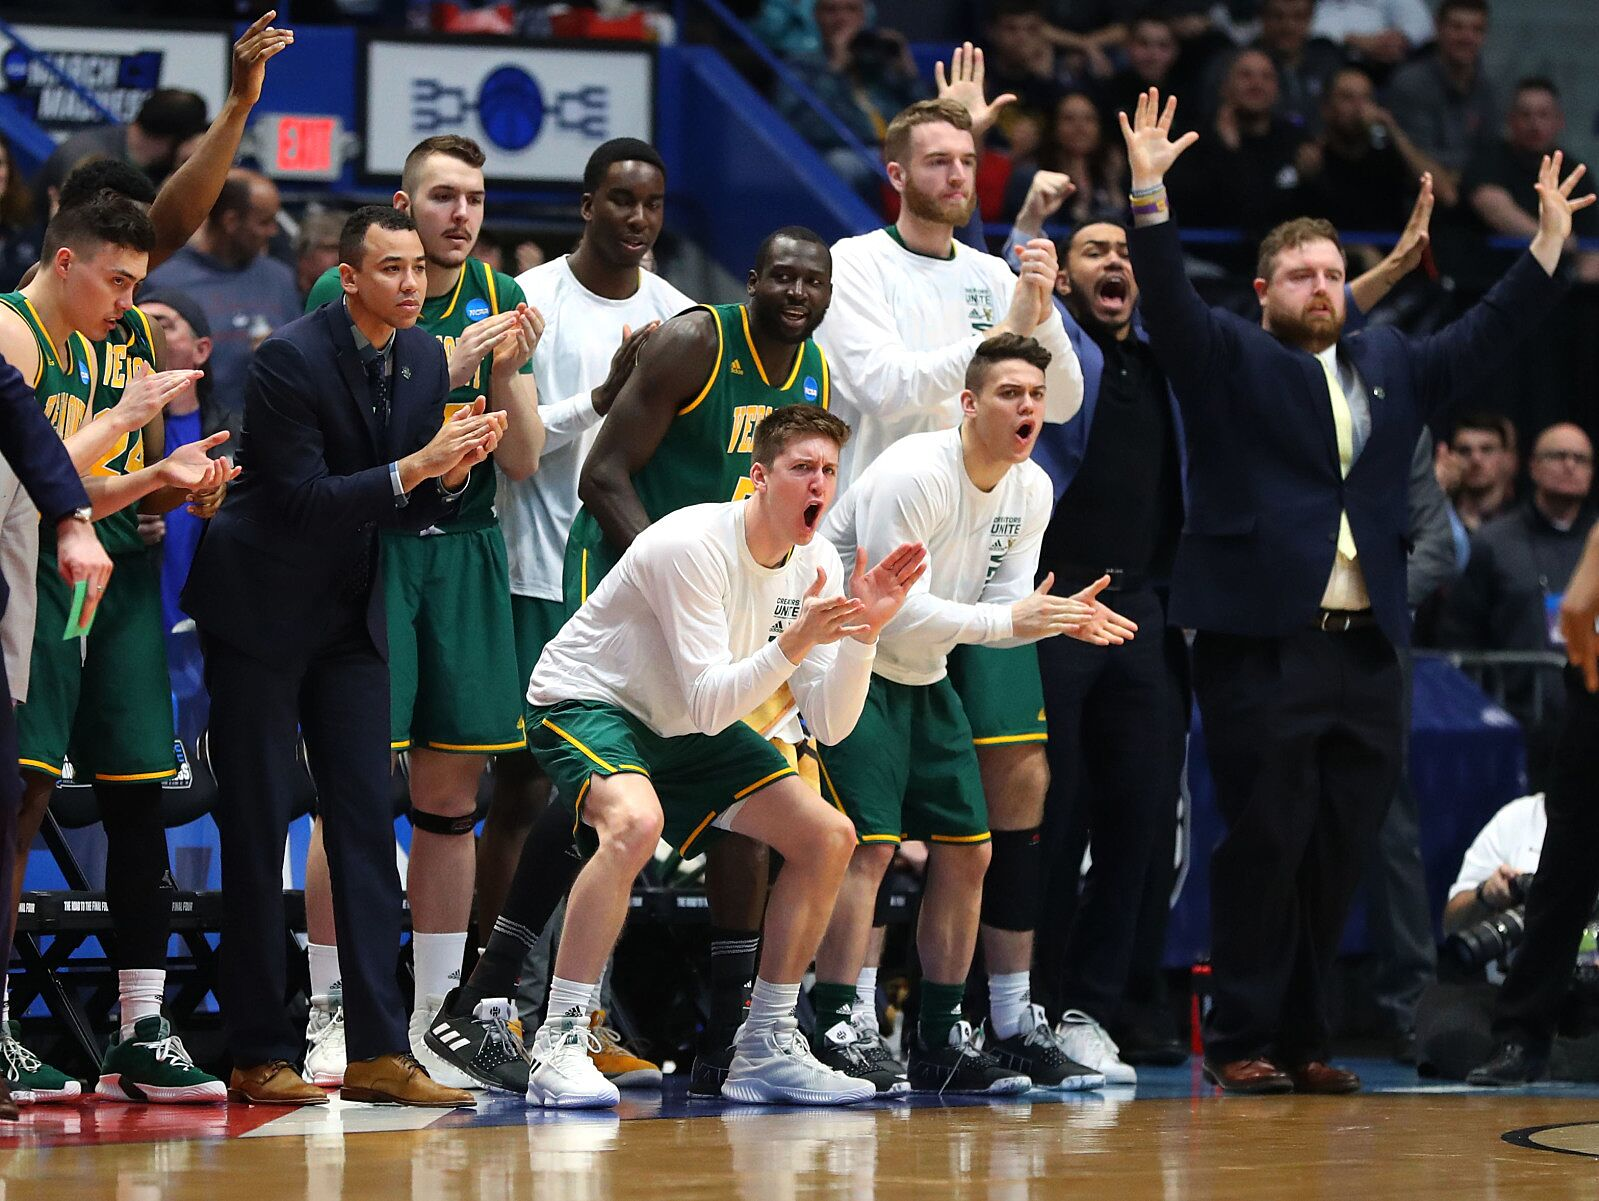 Vermont Basketball: 2019-20 season preview for Catamounts